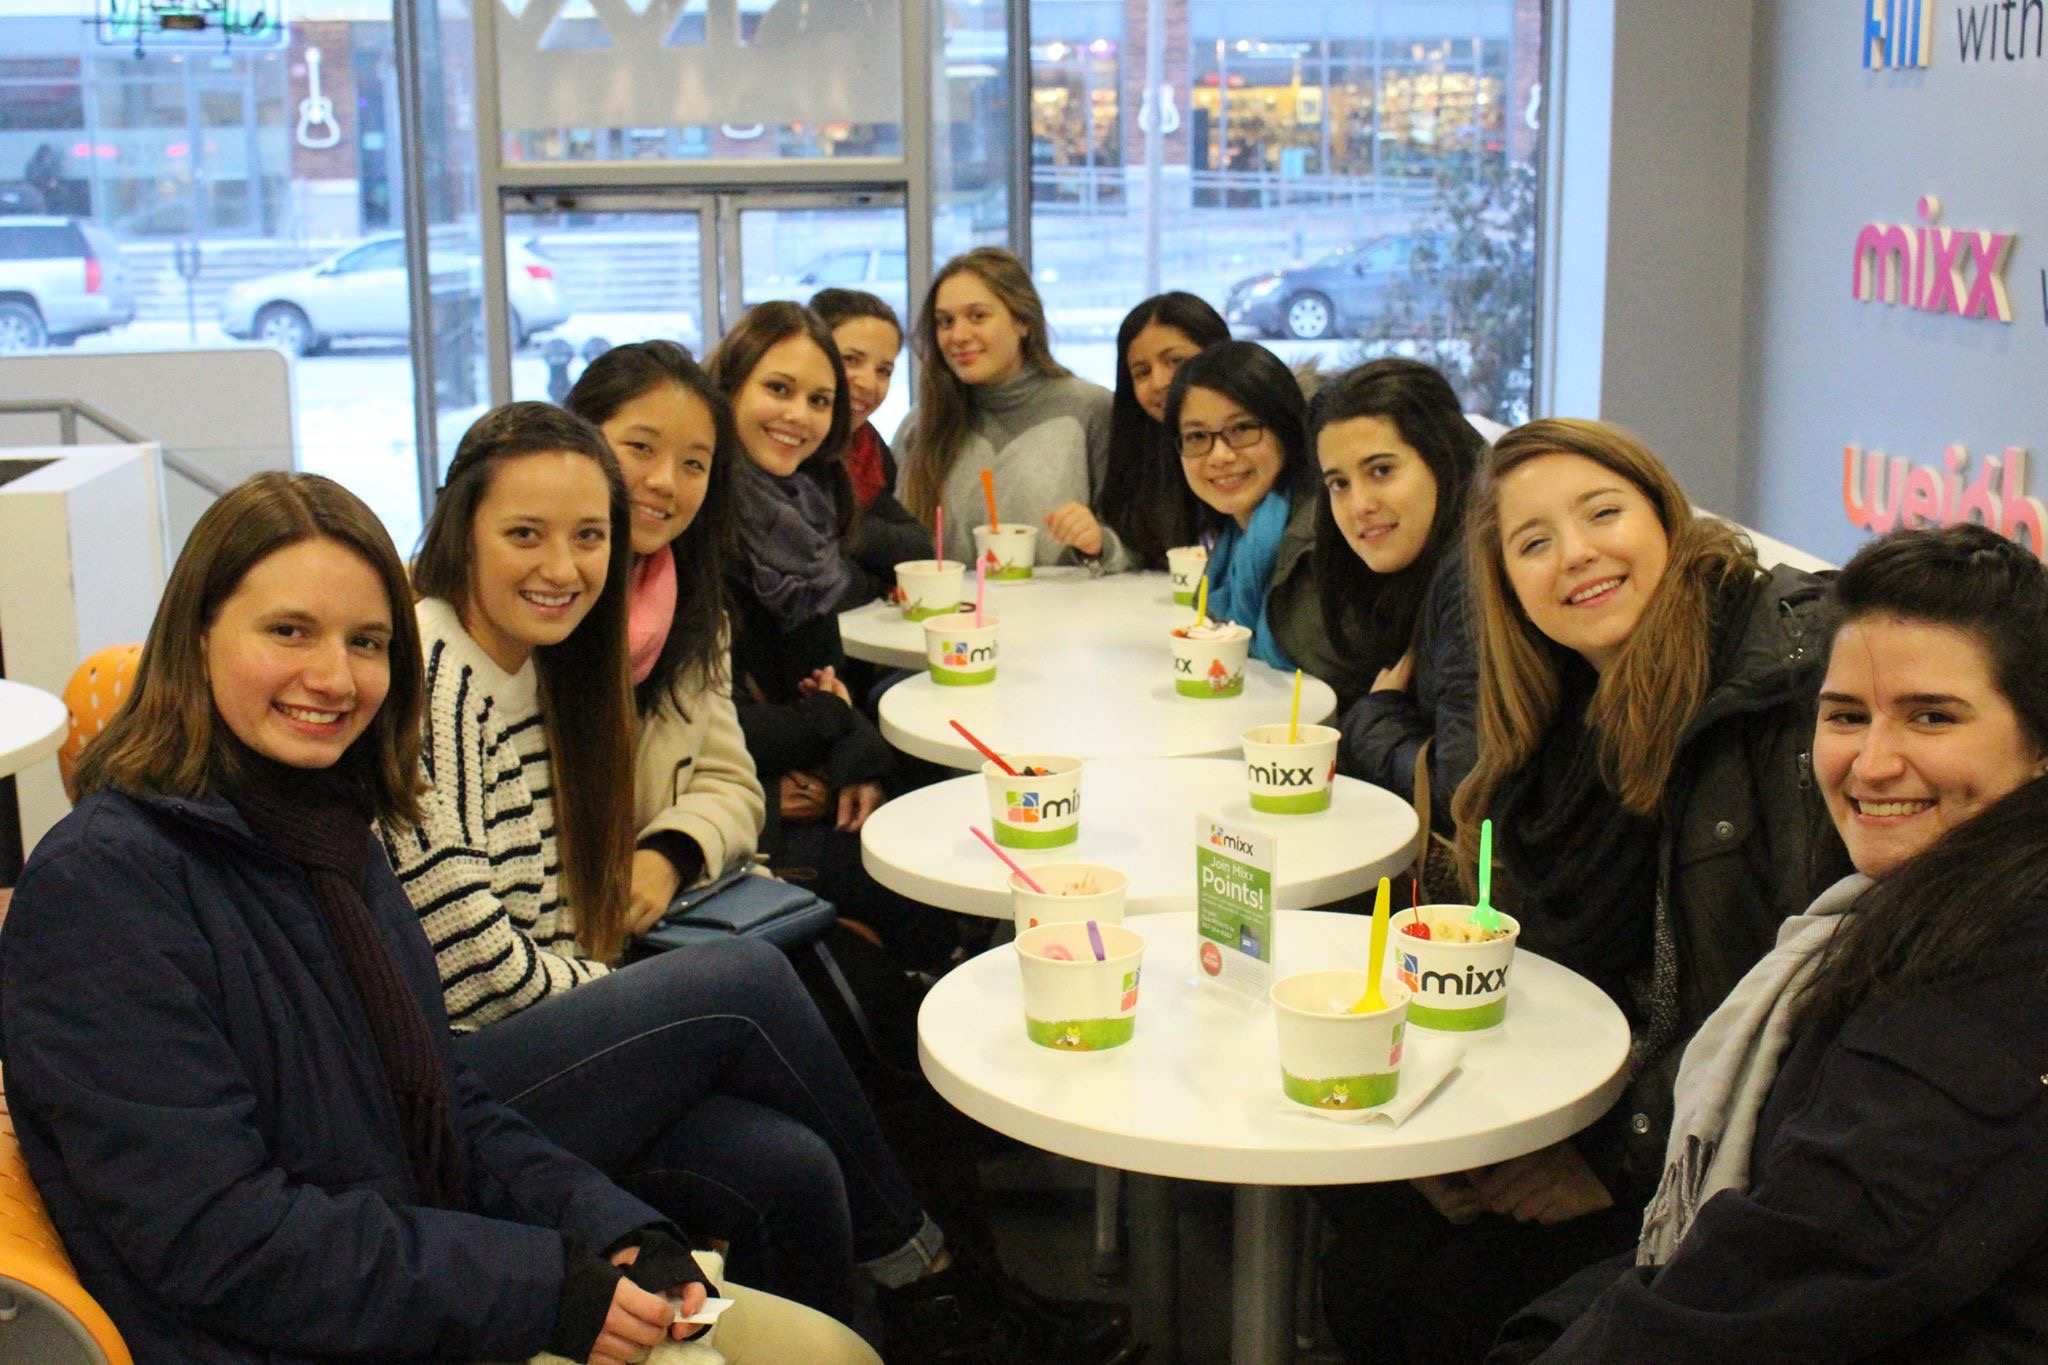 Out for froyo